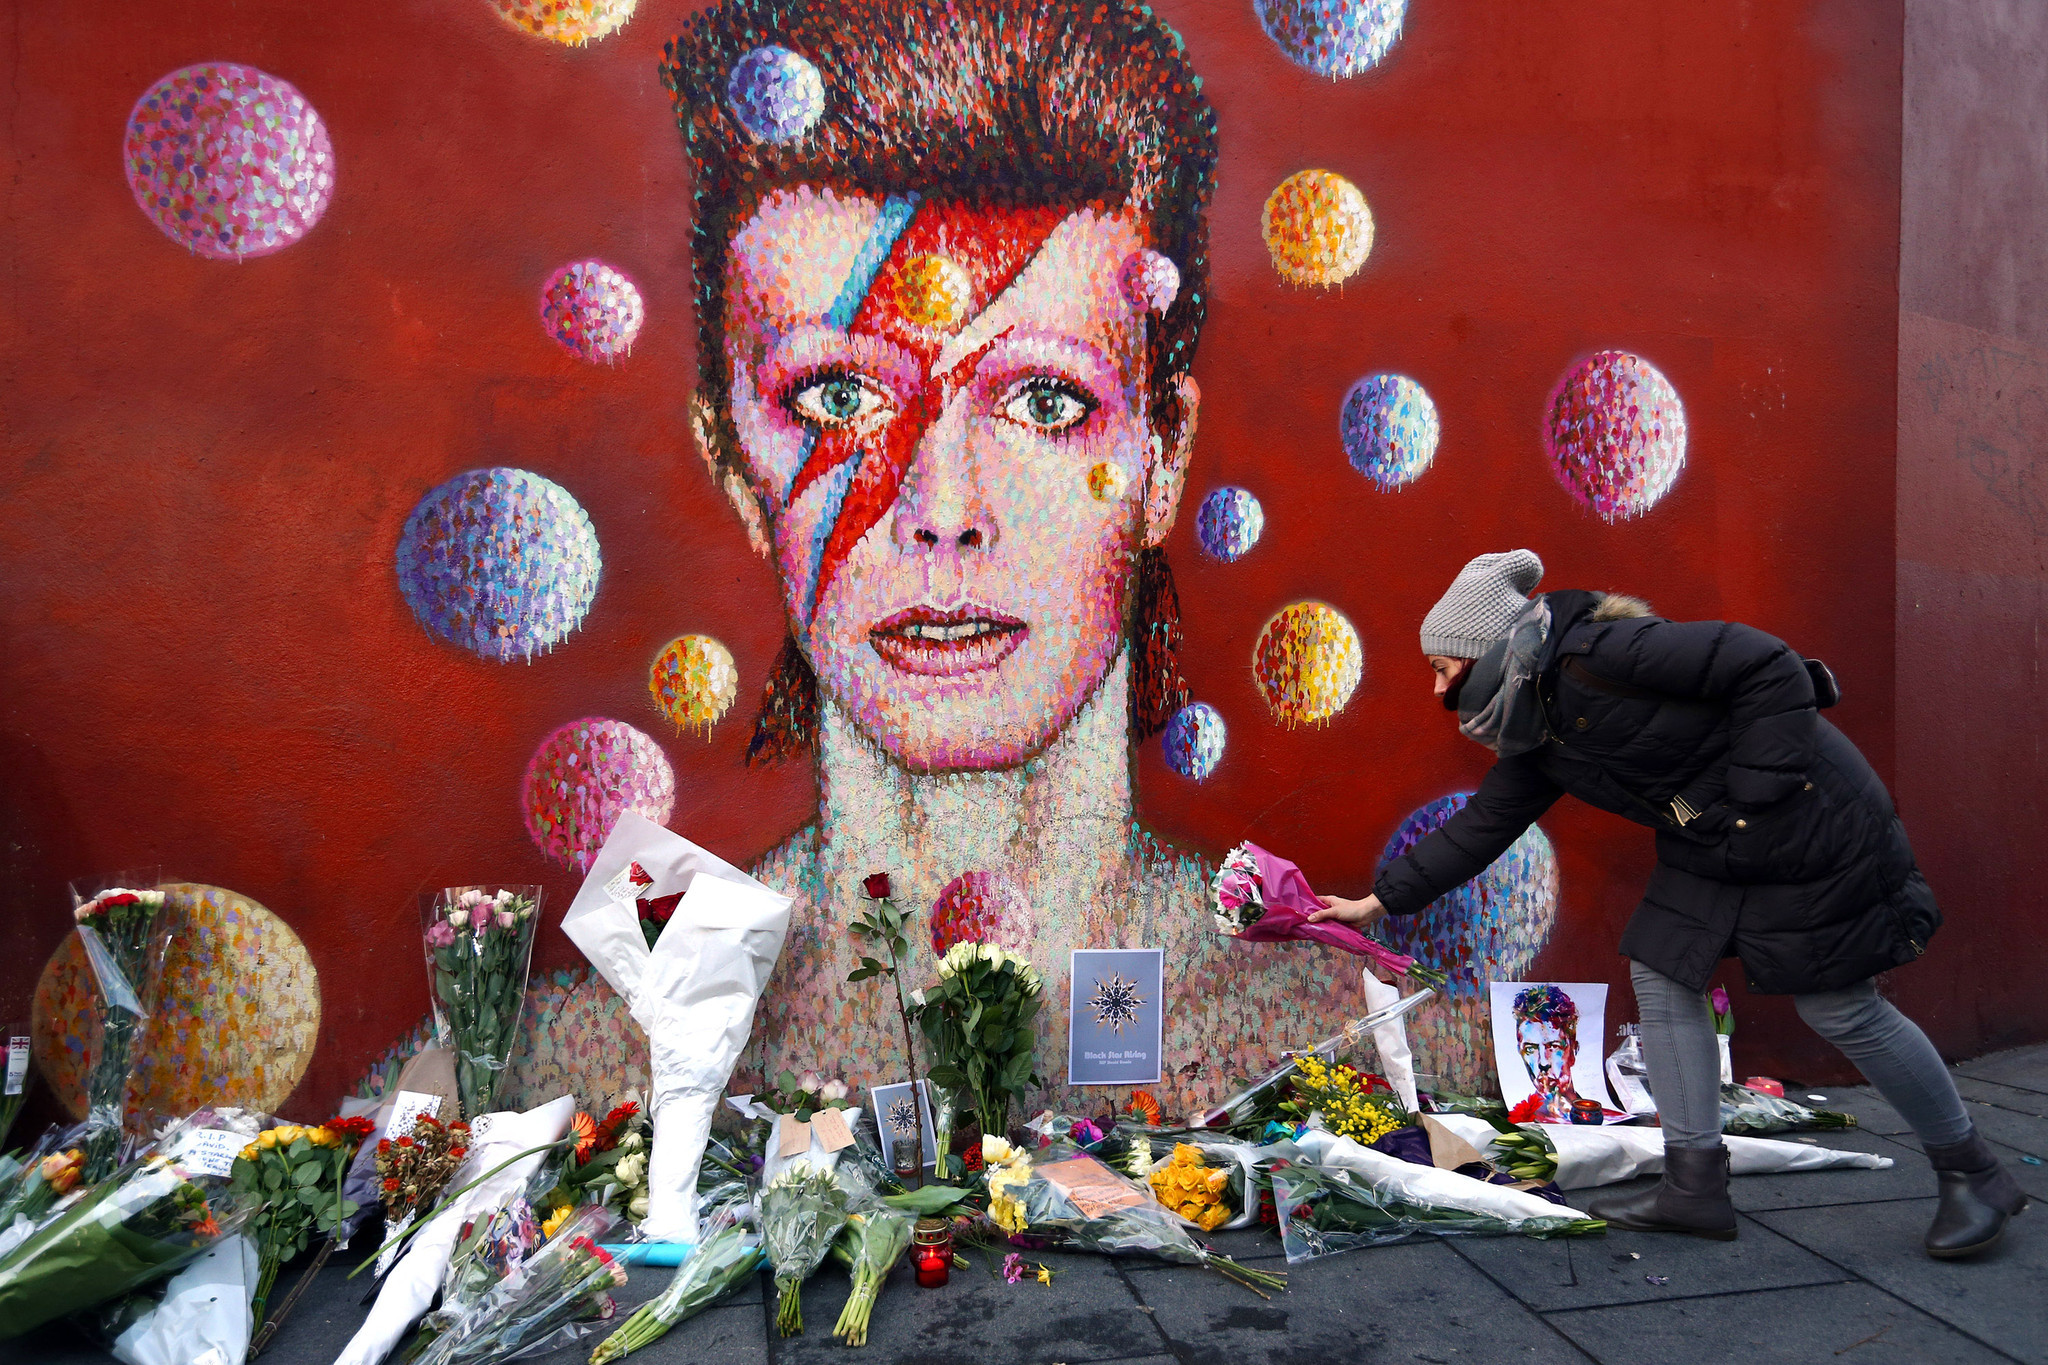 David Bowie, Remembering the Icon